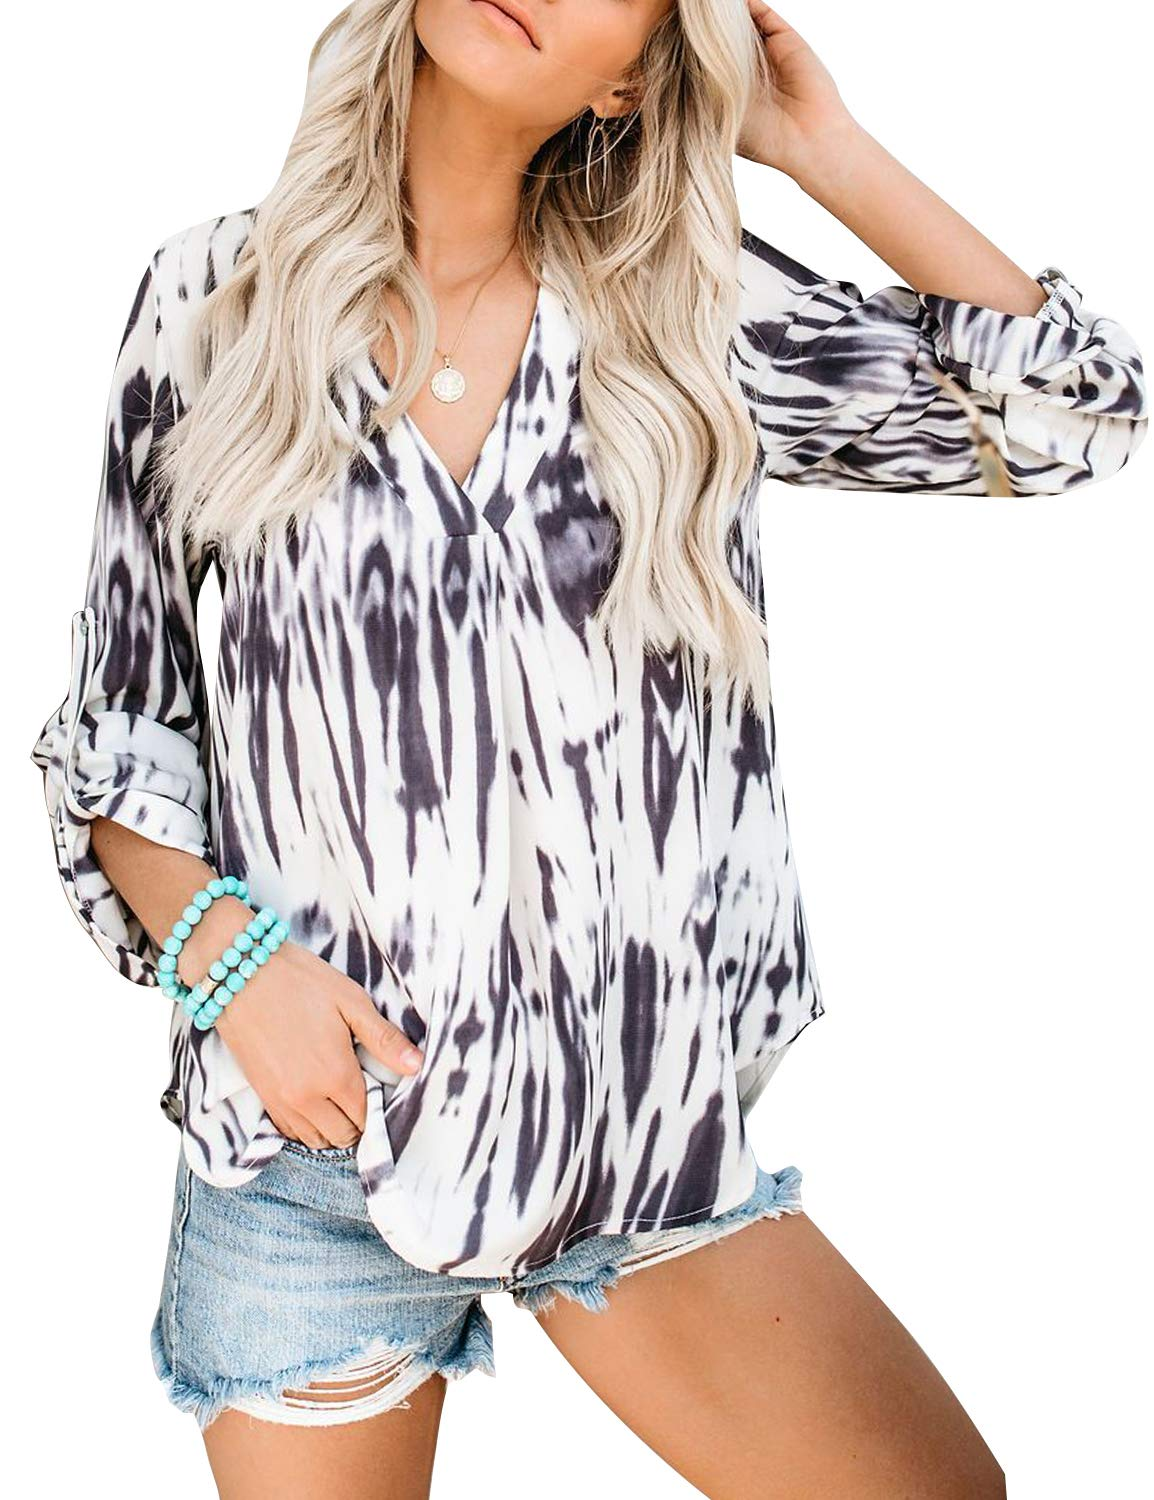 BMJL Women's Tie Dye Shirt V Neck Long Sleeve Tops Cute Oversized Blouse Floral Tees(Medium,Tie dye)